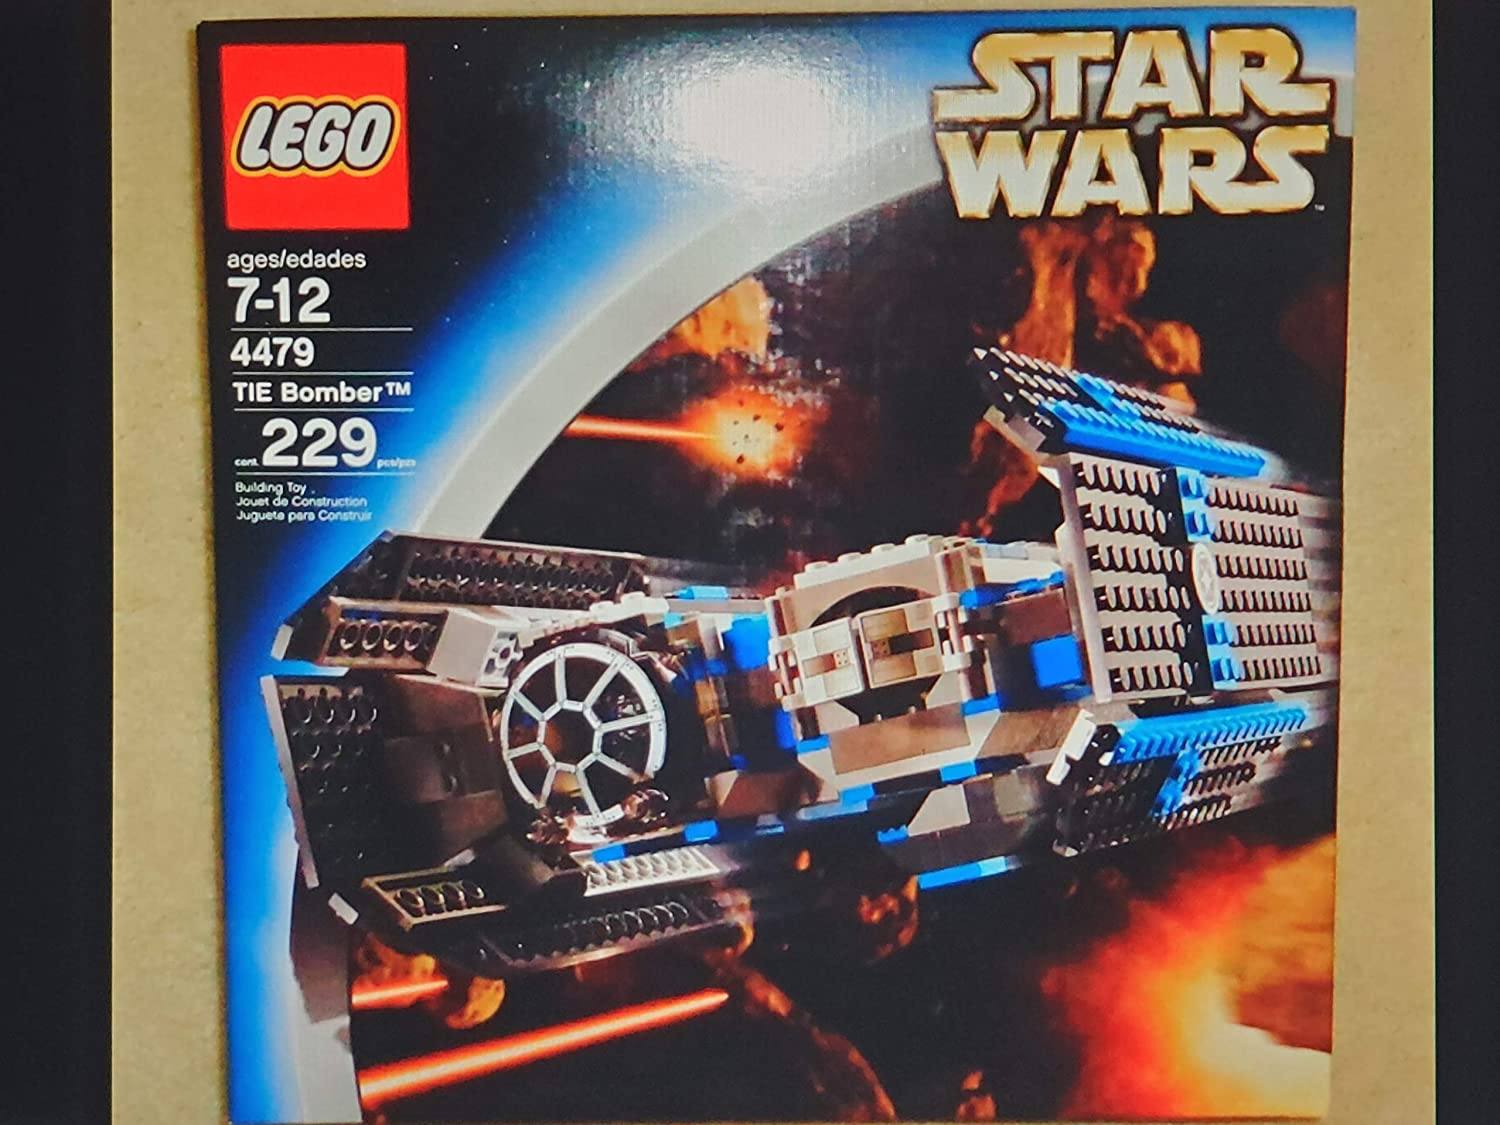 Lego Tie Bomber Star Wars 4479 New in Sealed Box.